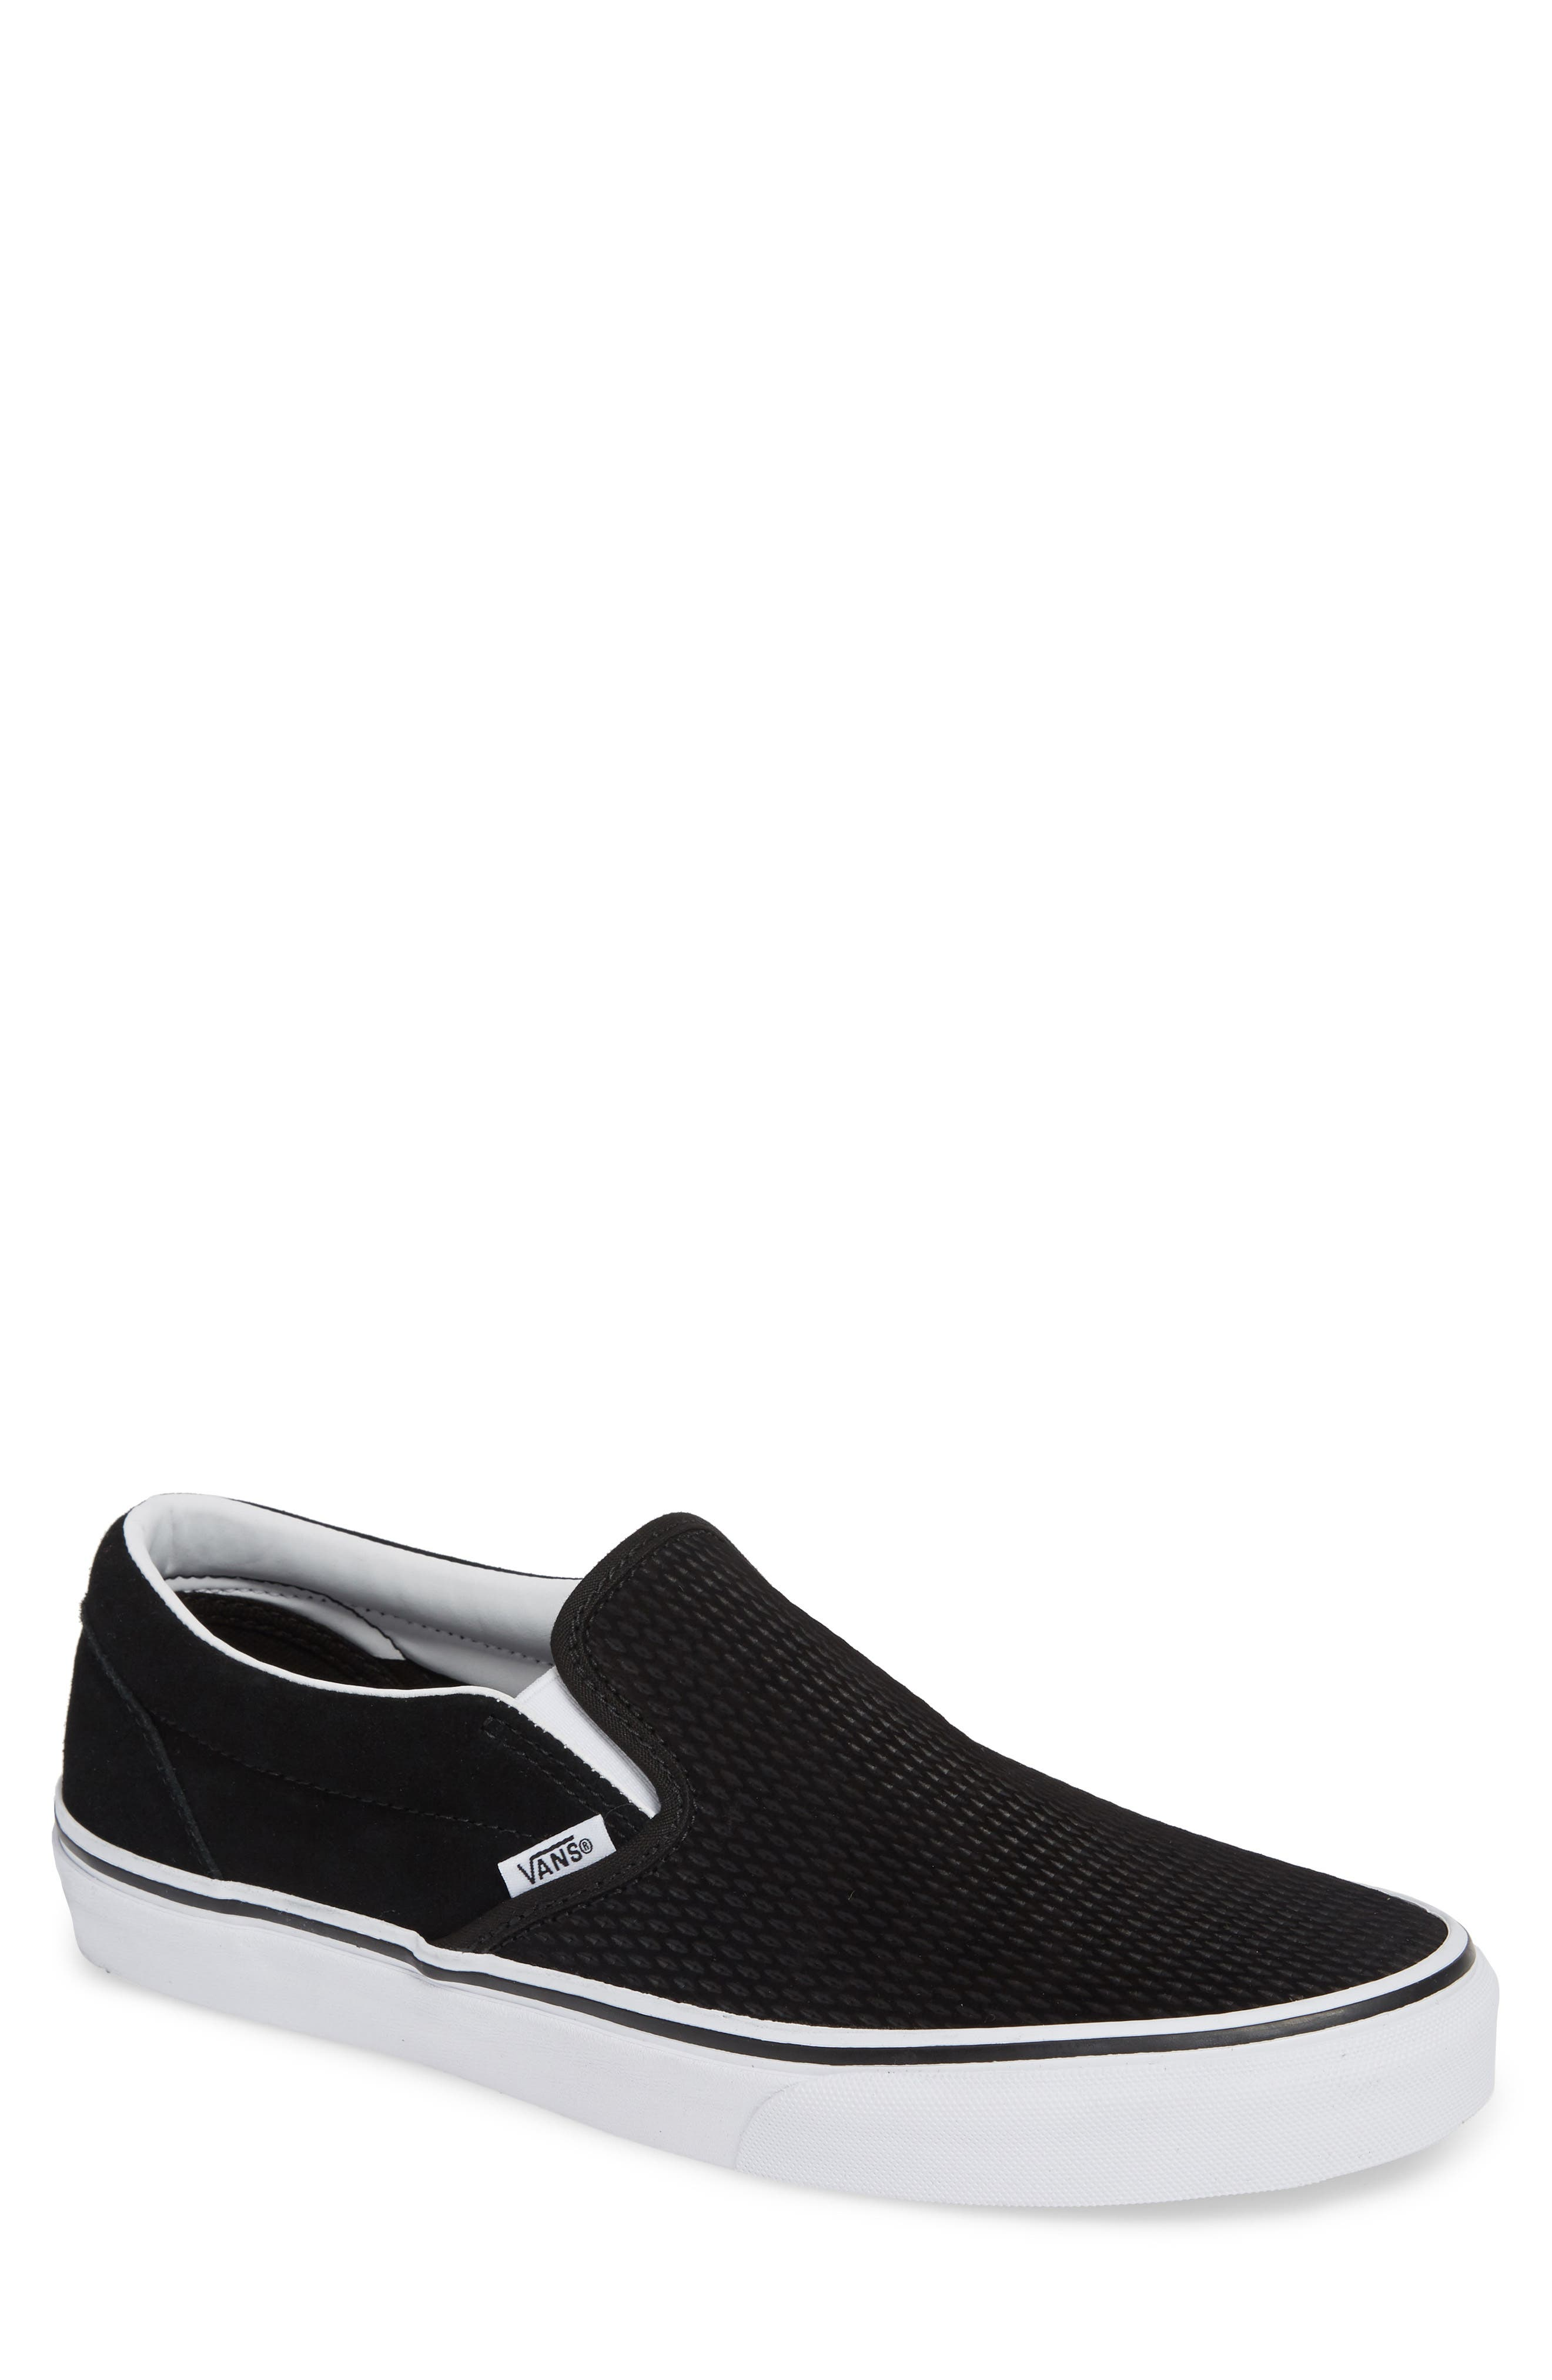 Classic Embossed Suede Slip-On,                             Main thumbnail 1, color,                             BLACK/ TRUE WHITE SUEDE